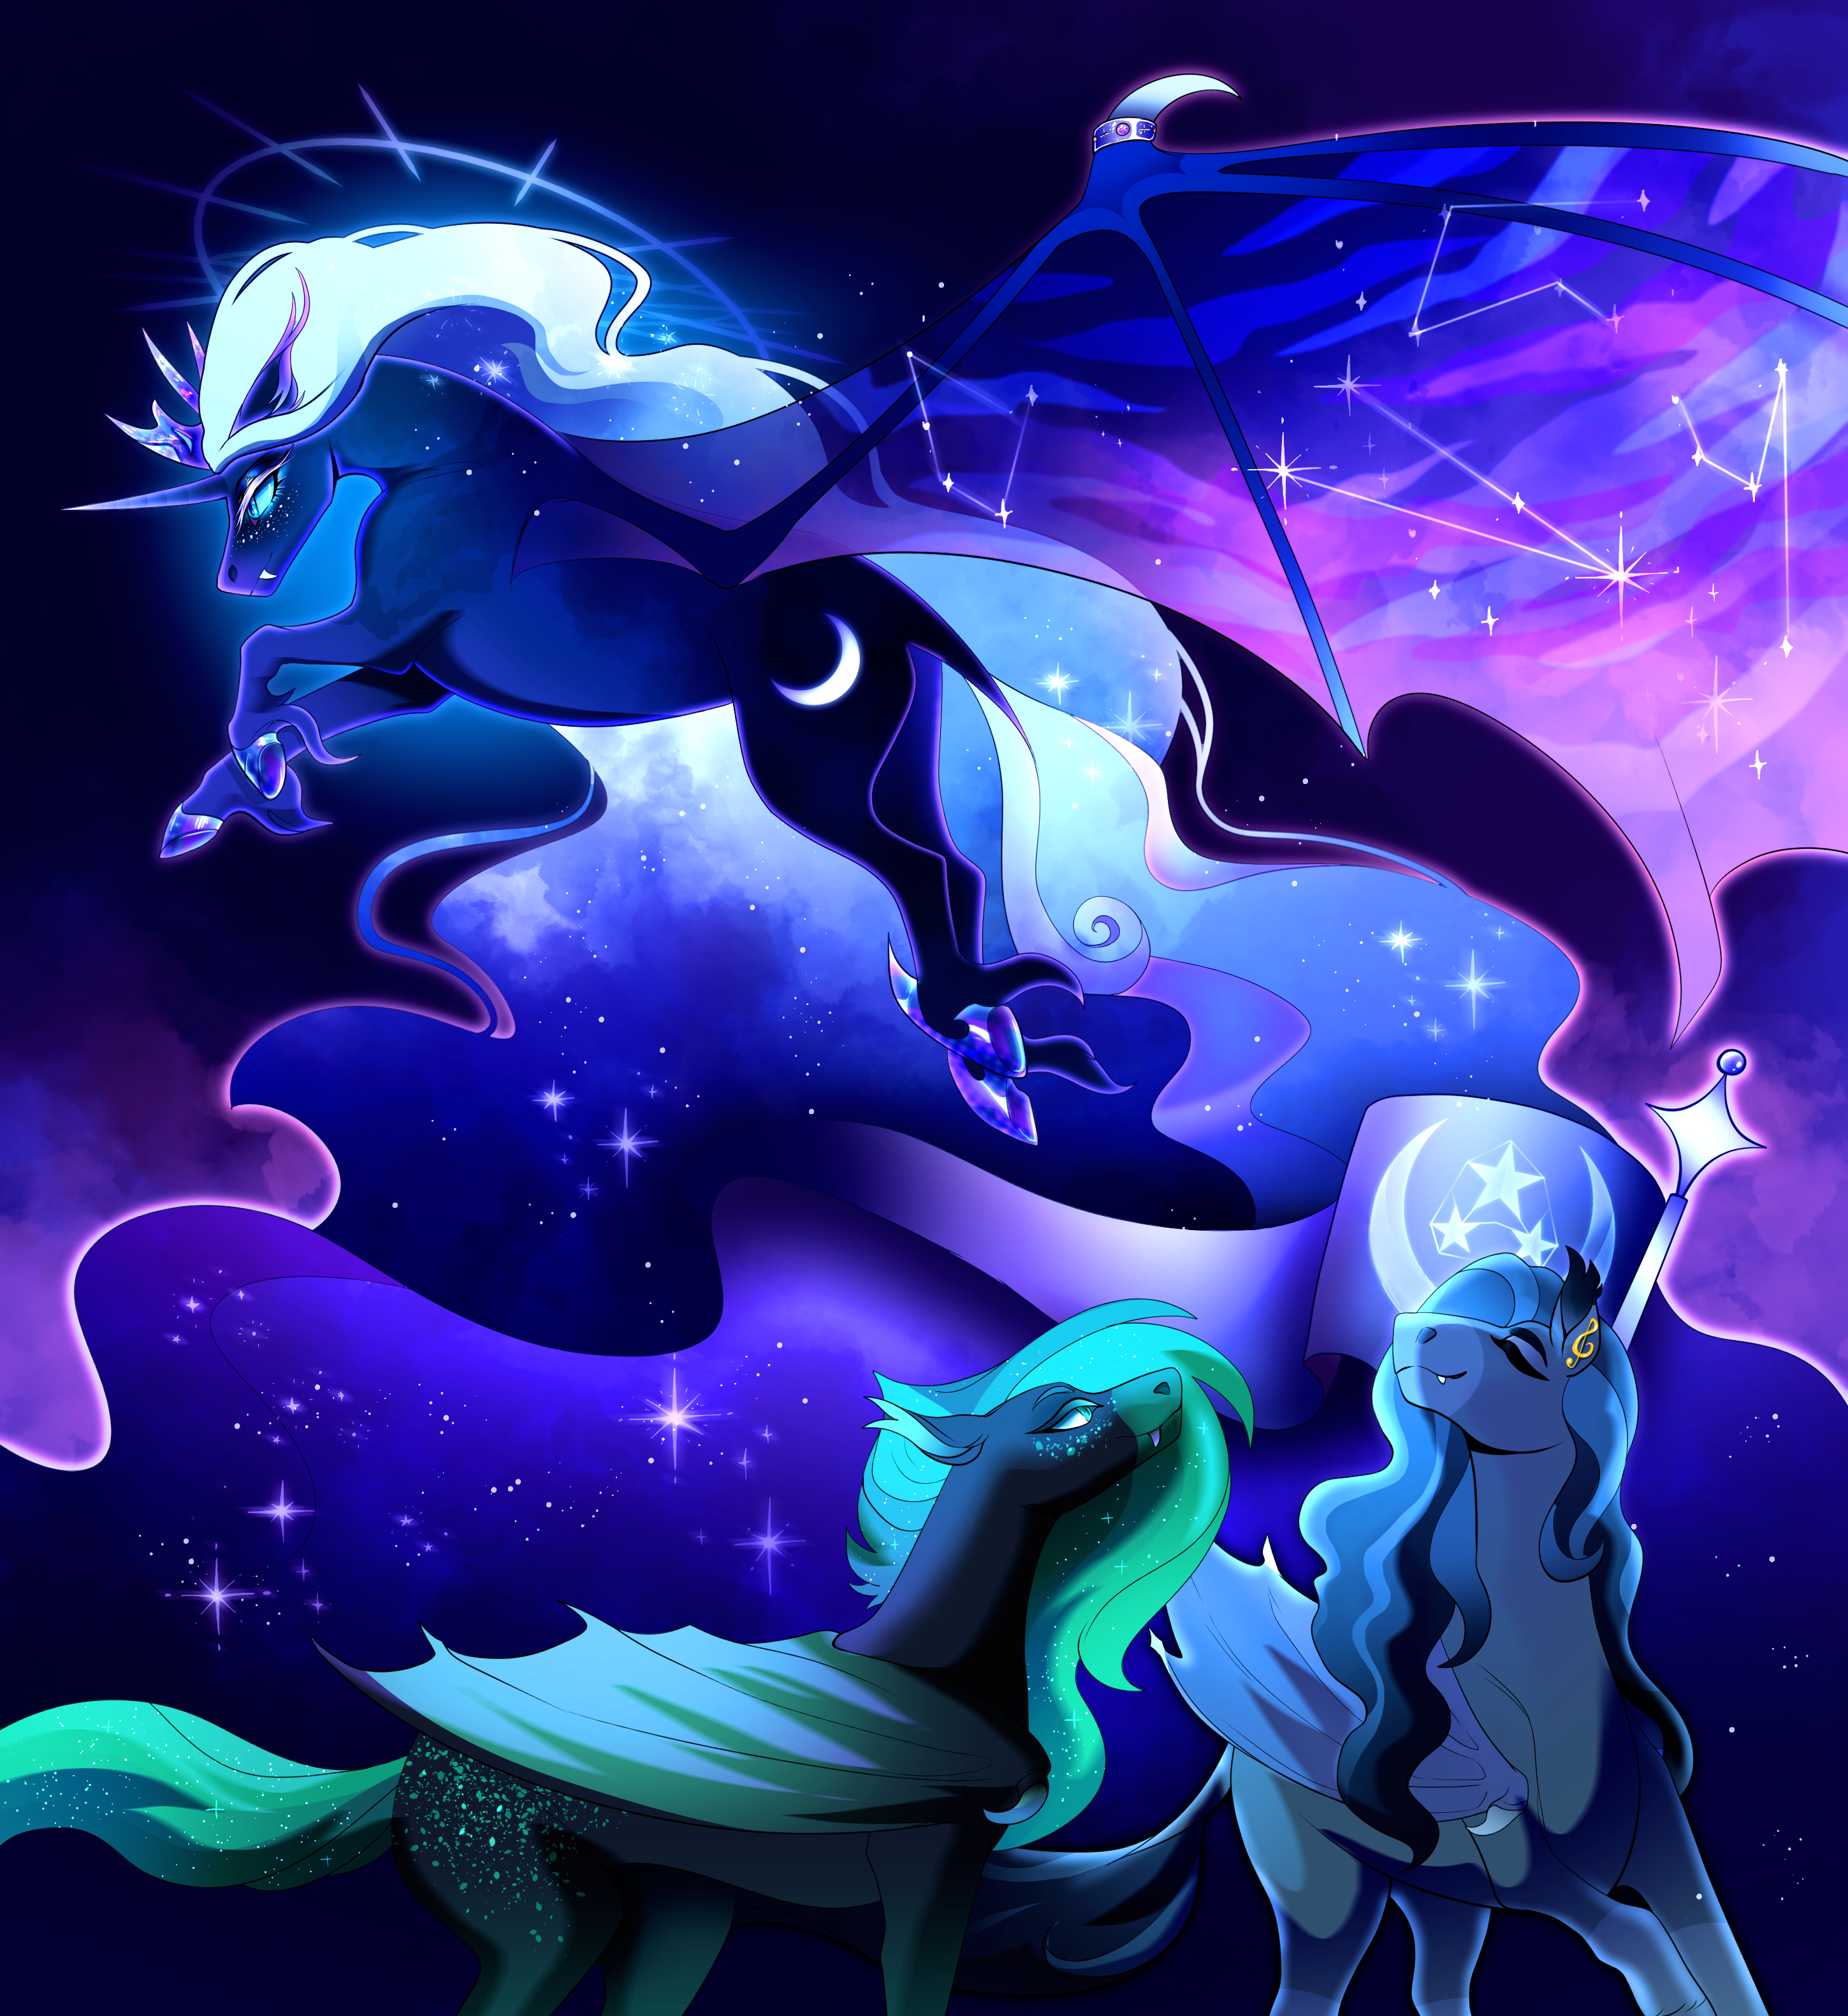 [hollyverse] 17. Mother Moon